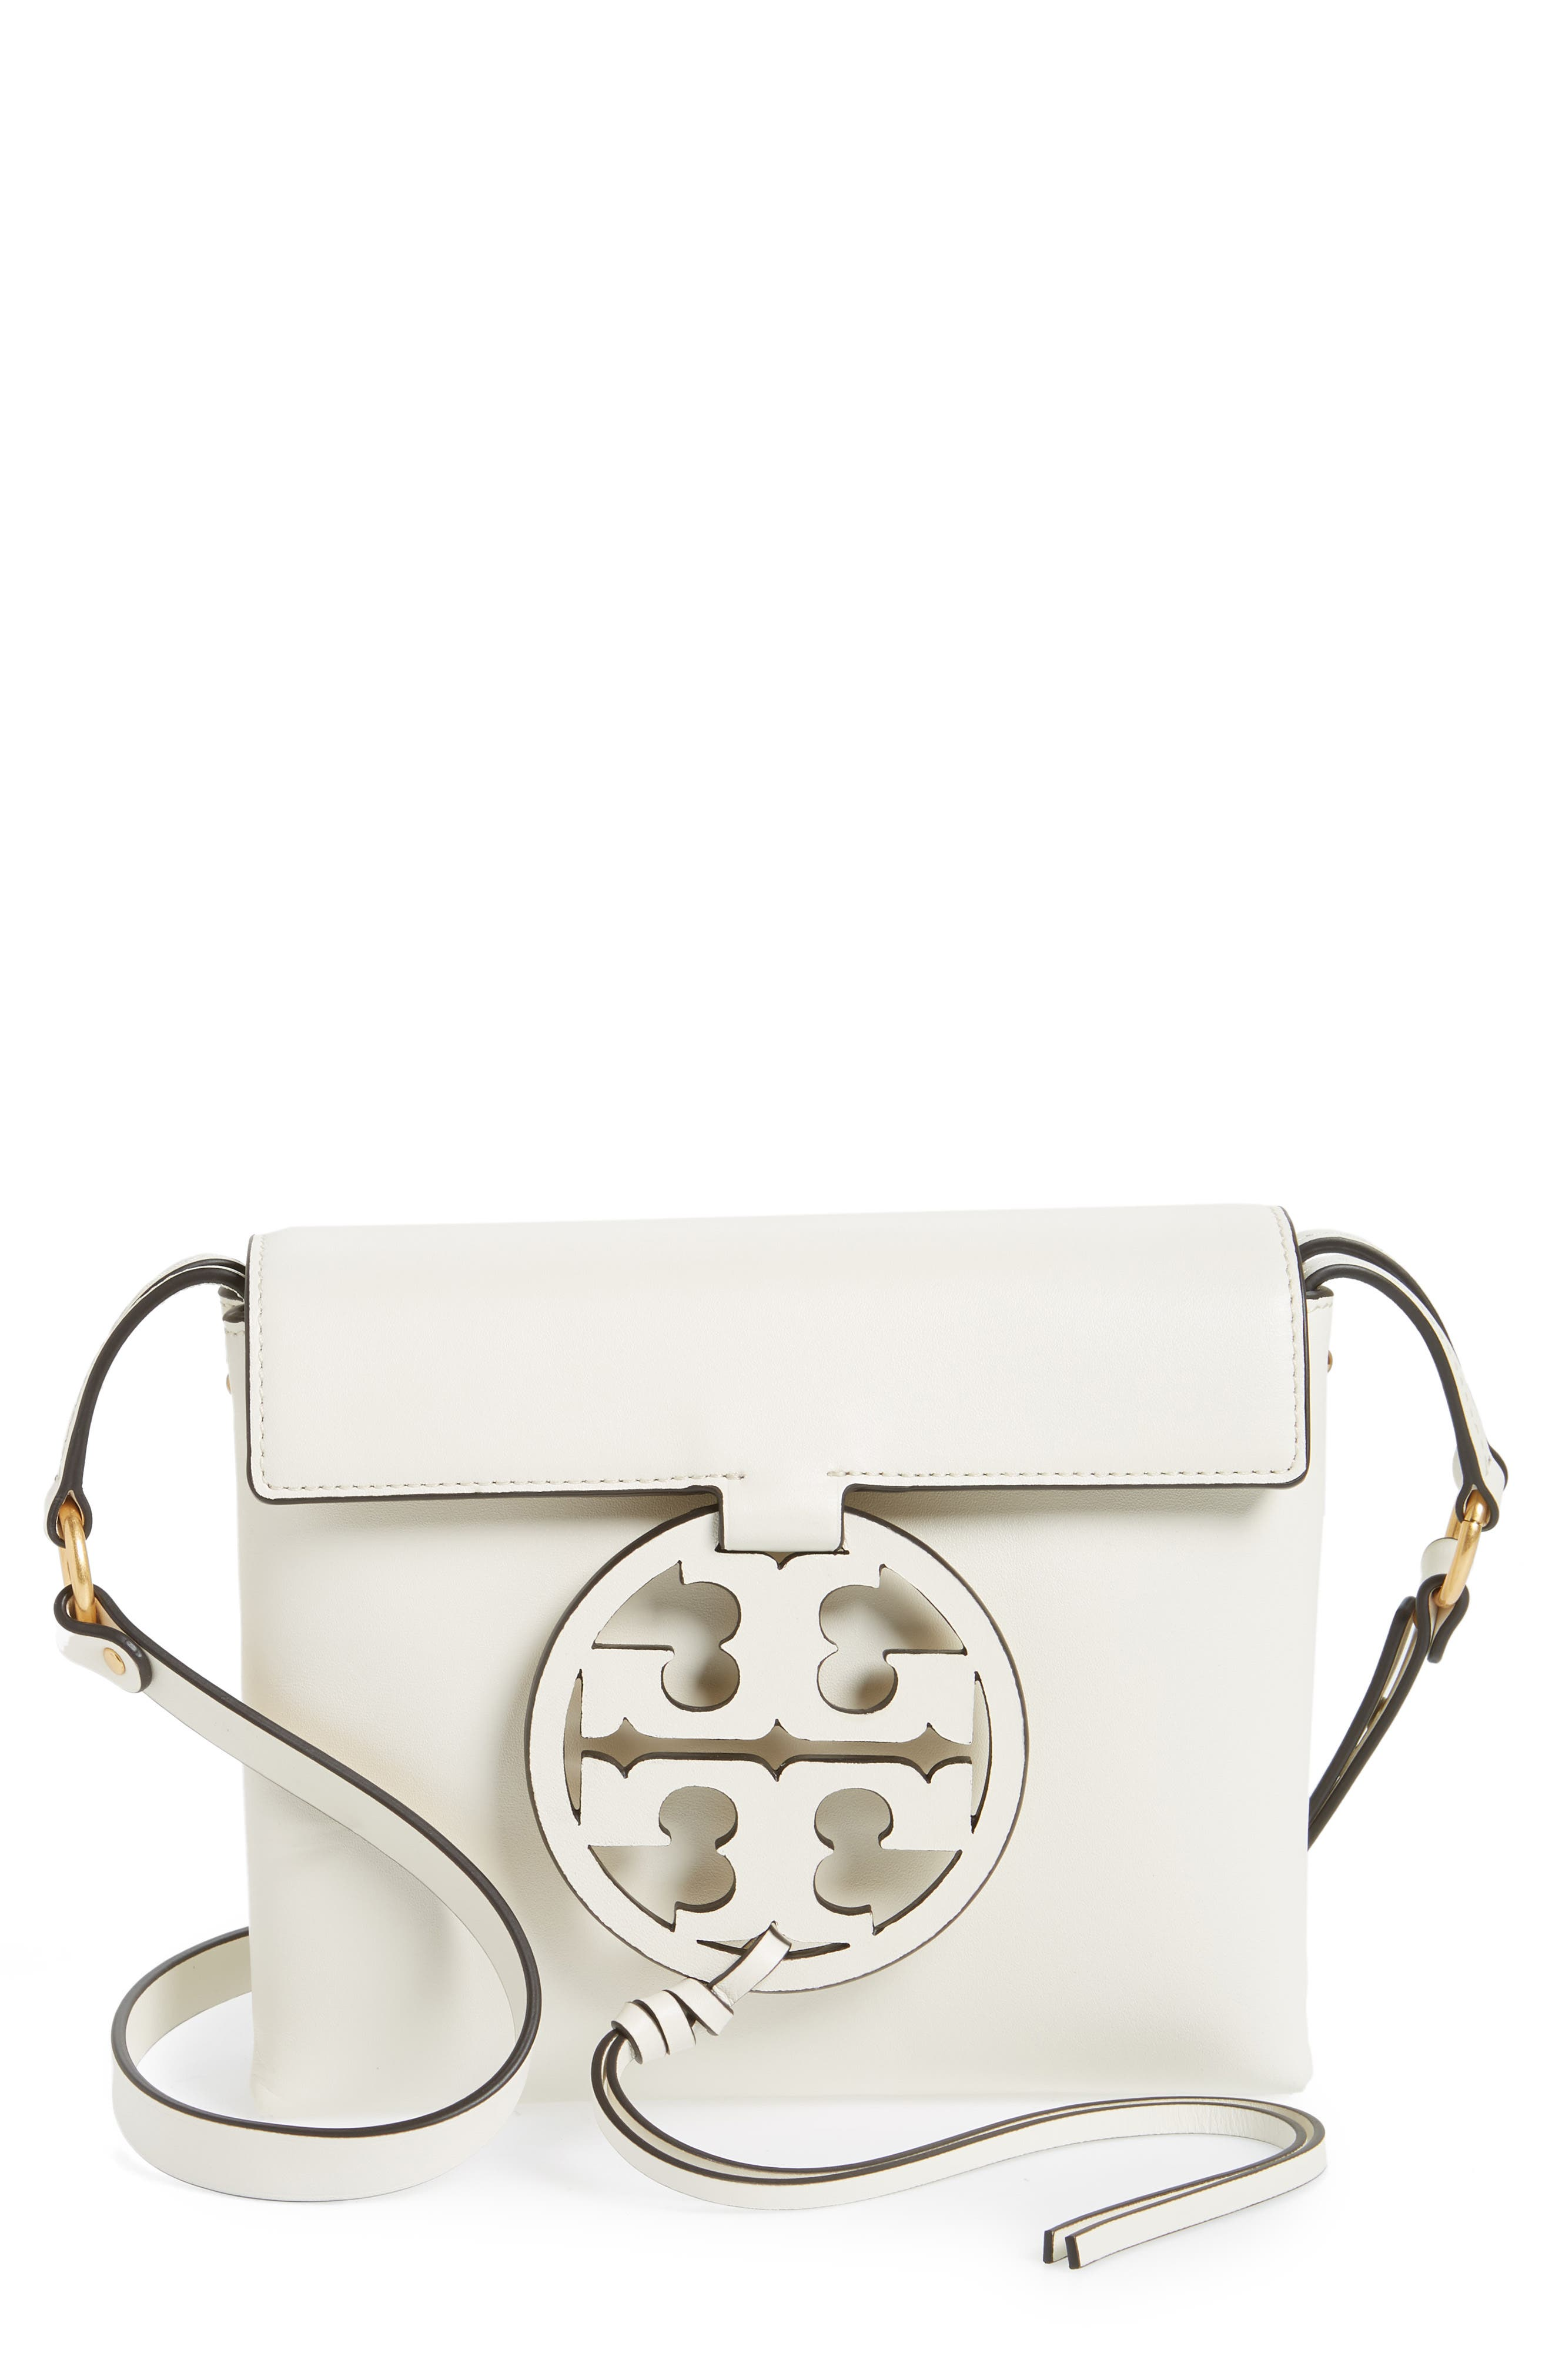 TORY BURCH,                             Miller Leather Crossbody Bag,                             Main thumbnail 1, color,                             107